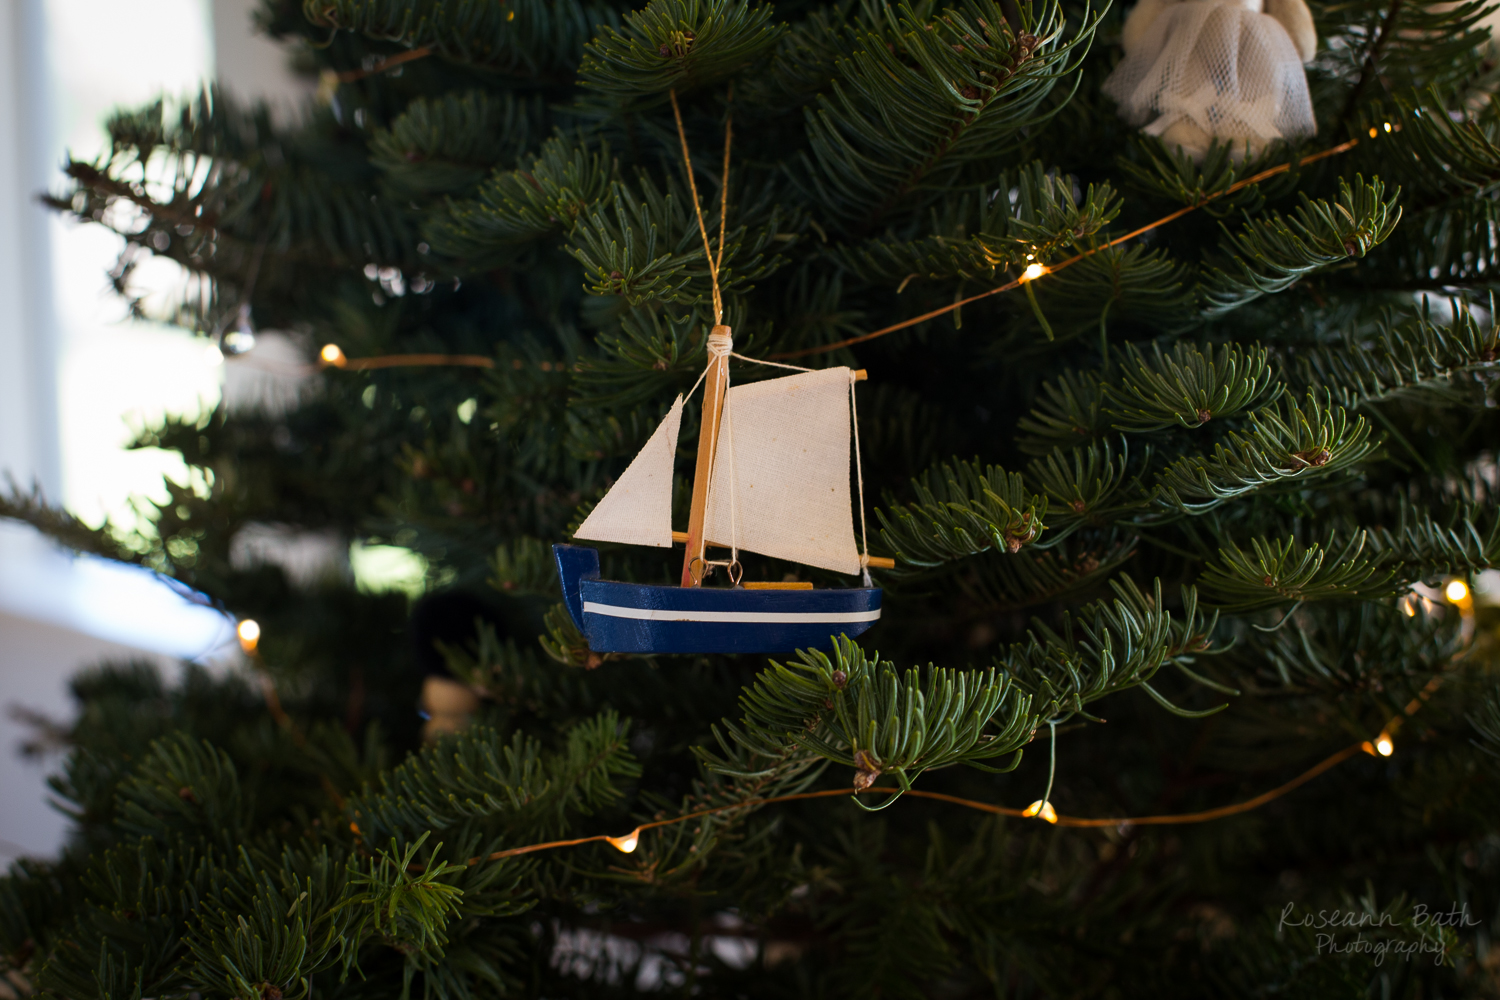 boat ornament and metal lights